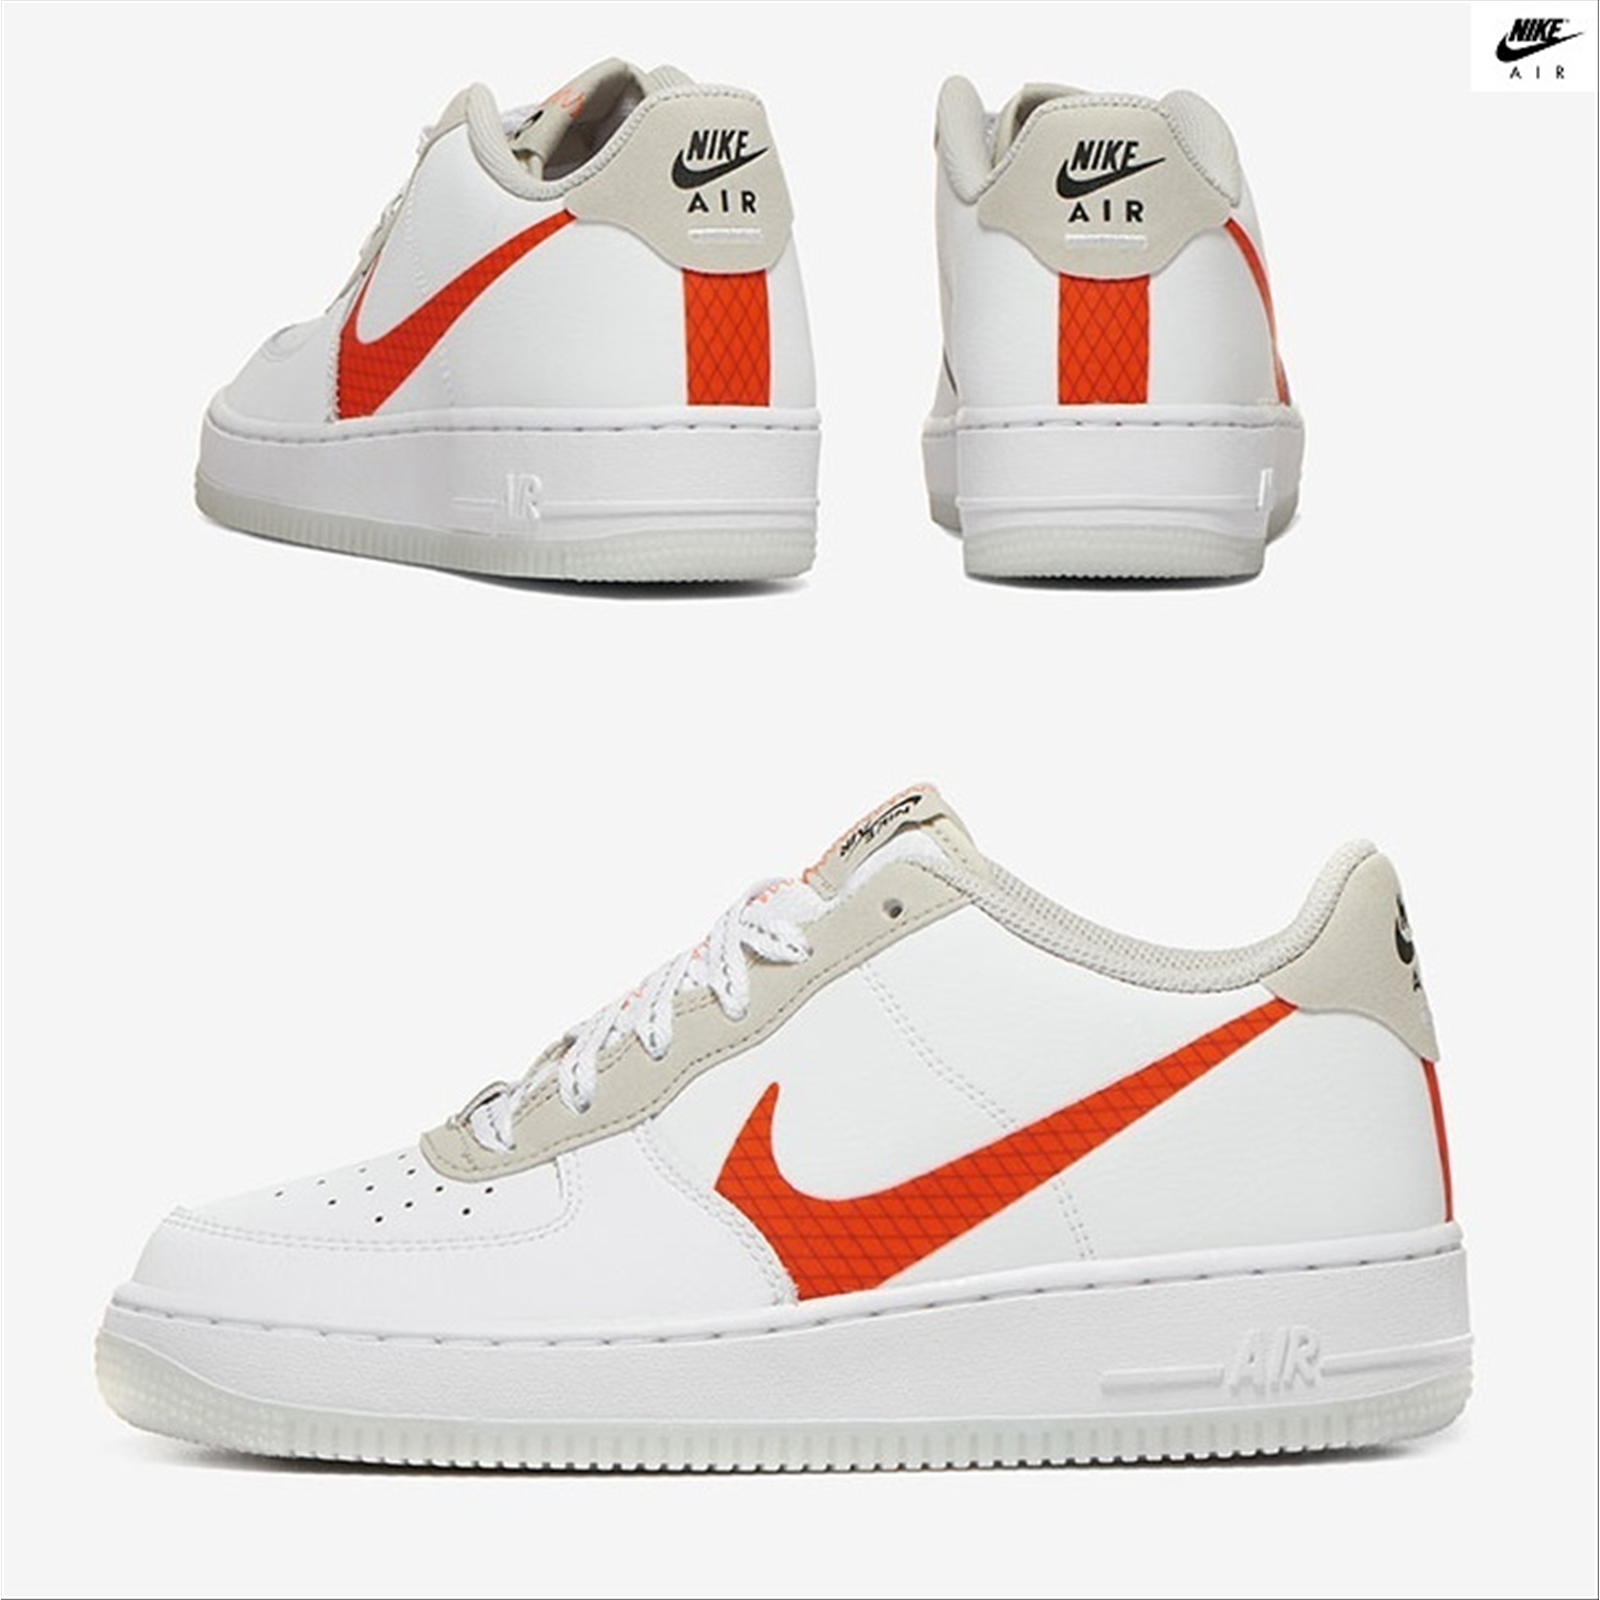 nike air force 1 uomo arancio